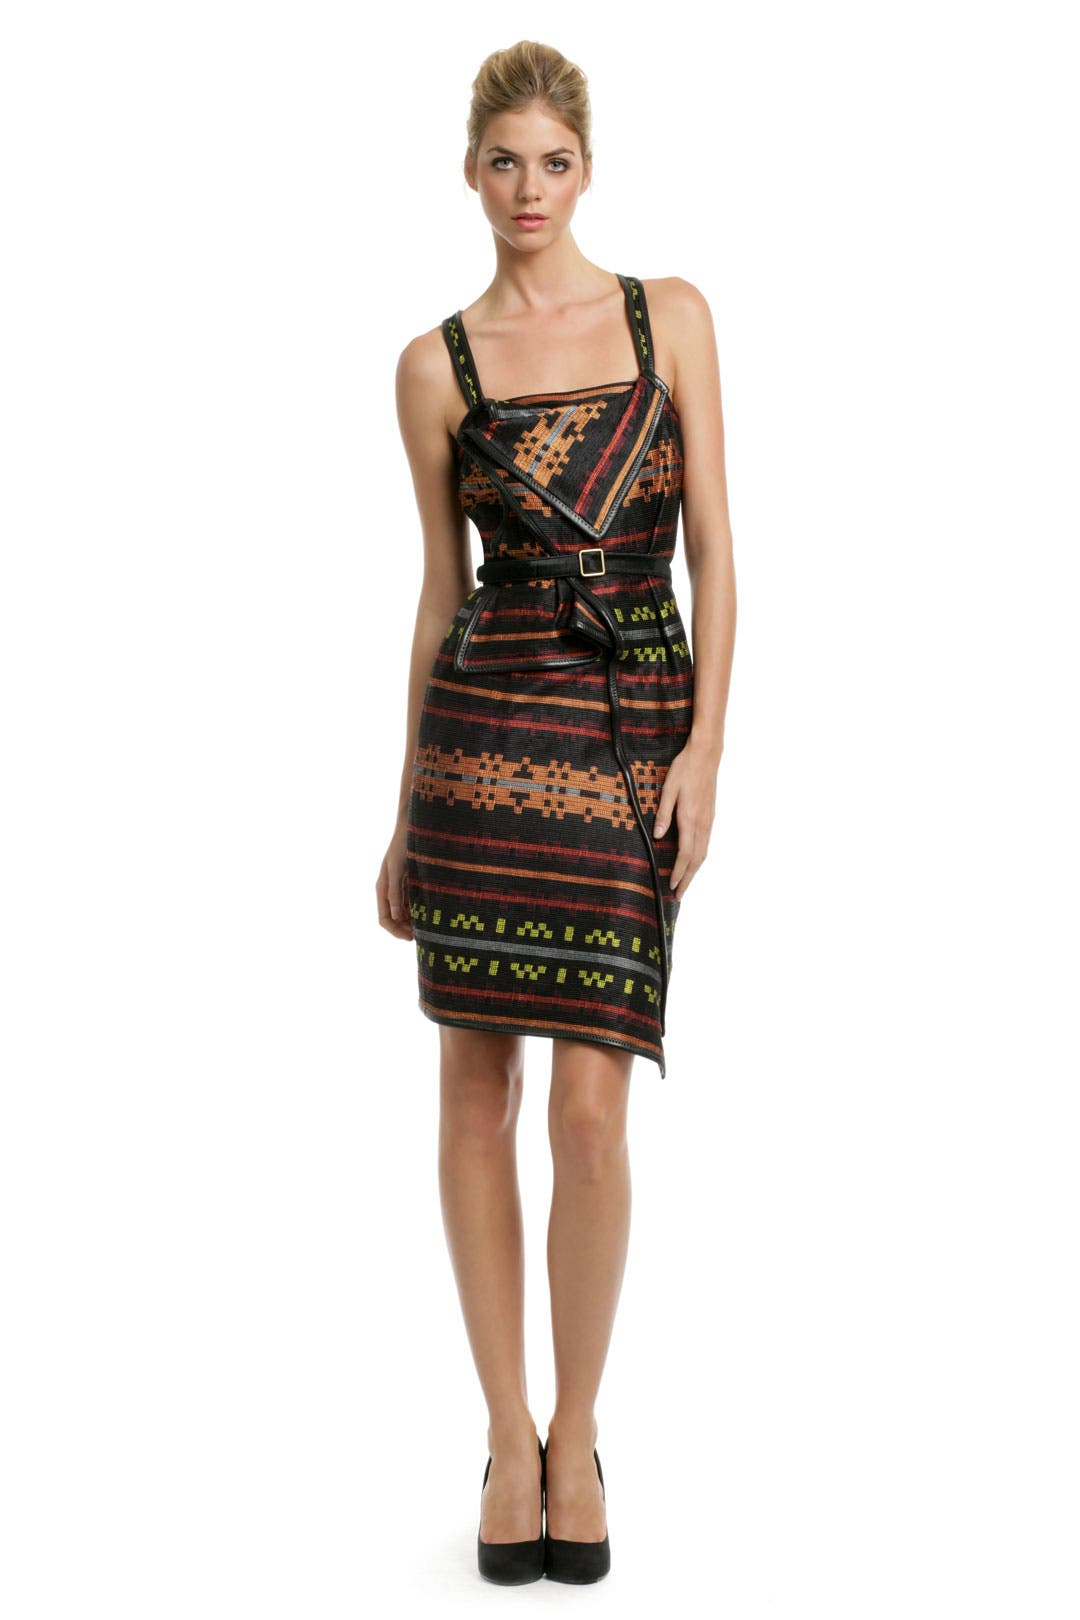 Wild Wild West Dress by Proenza Schouler